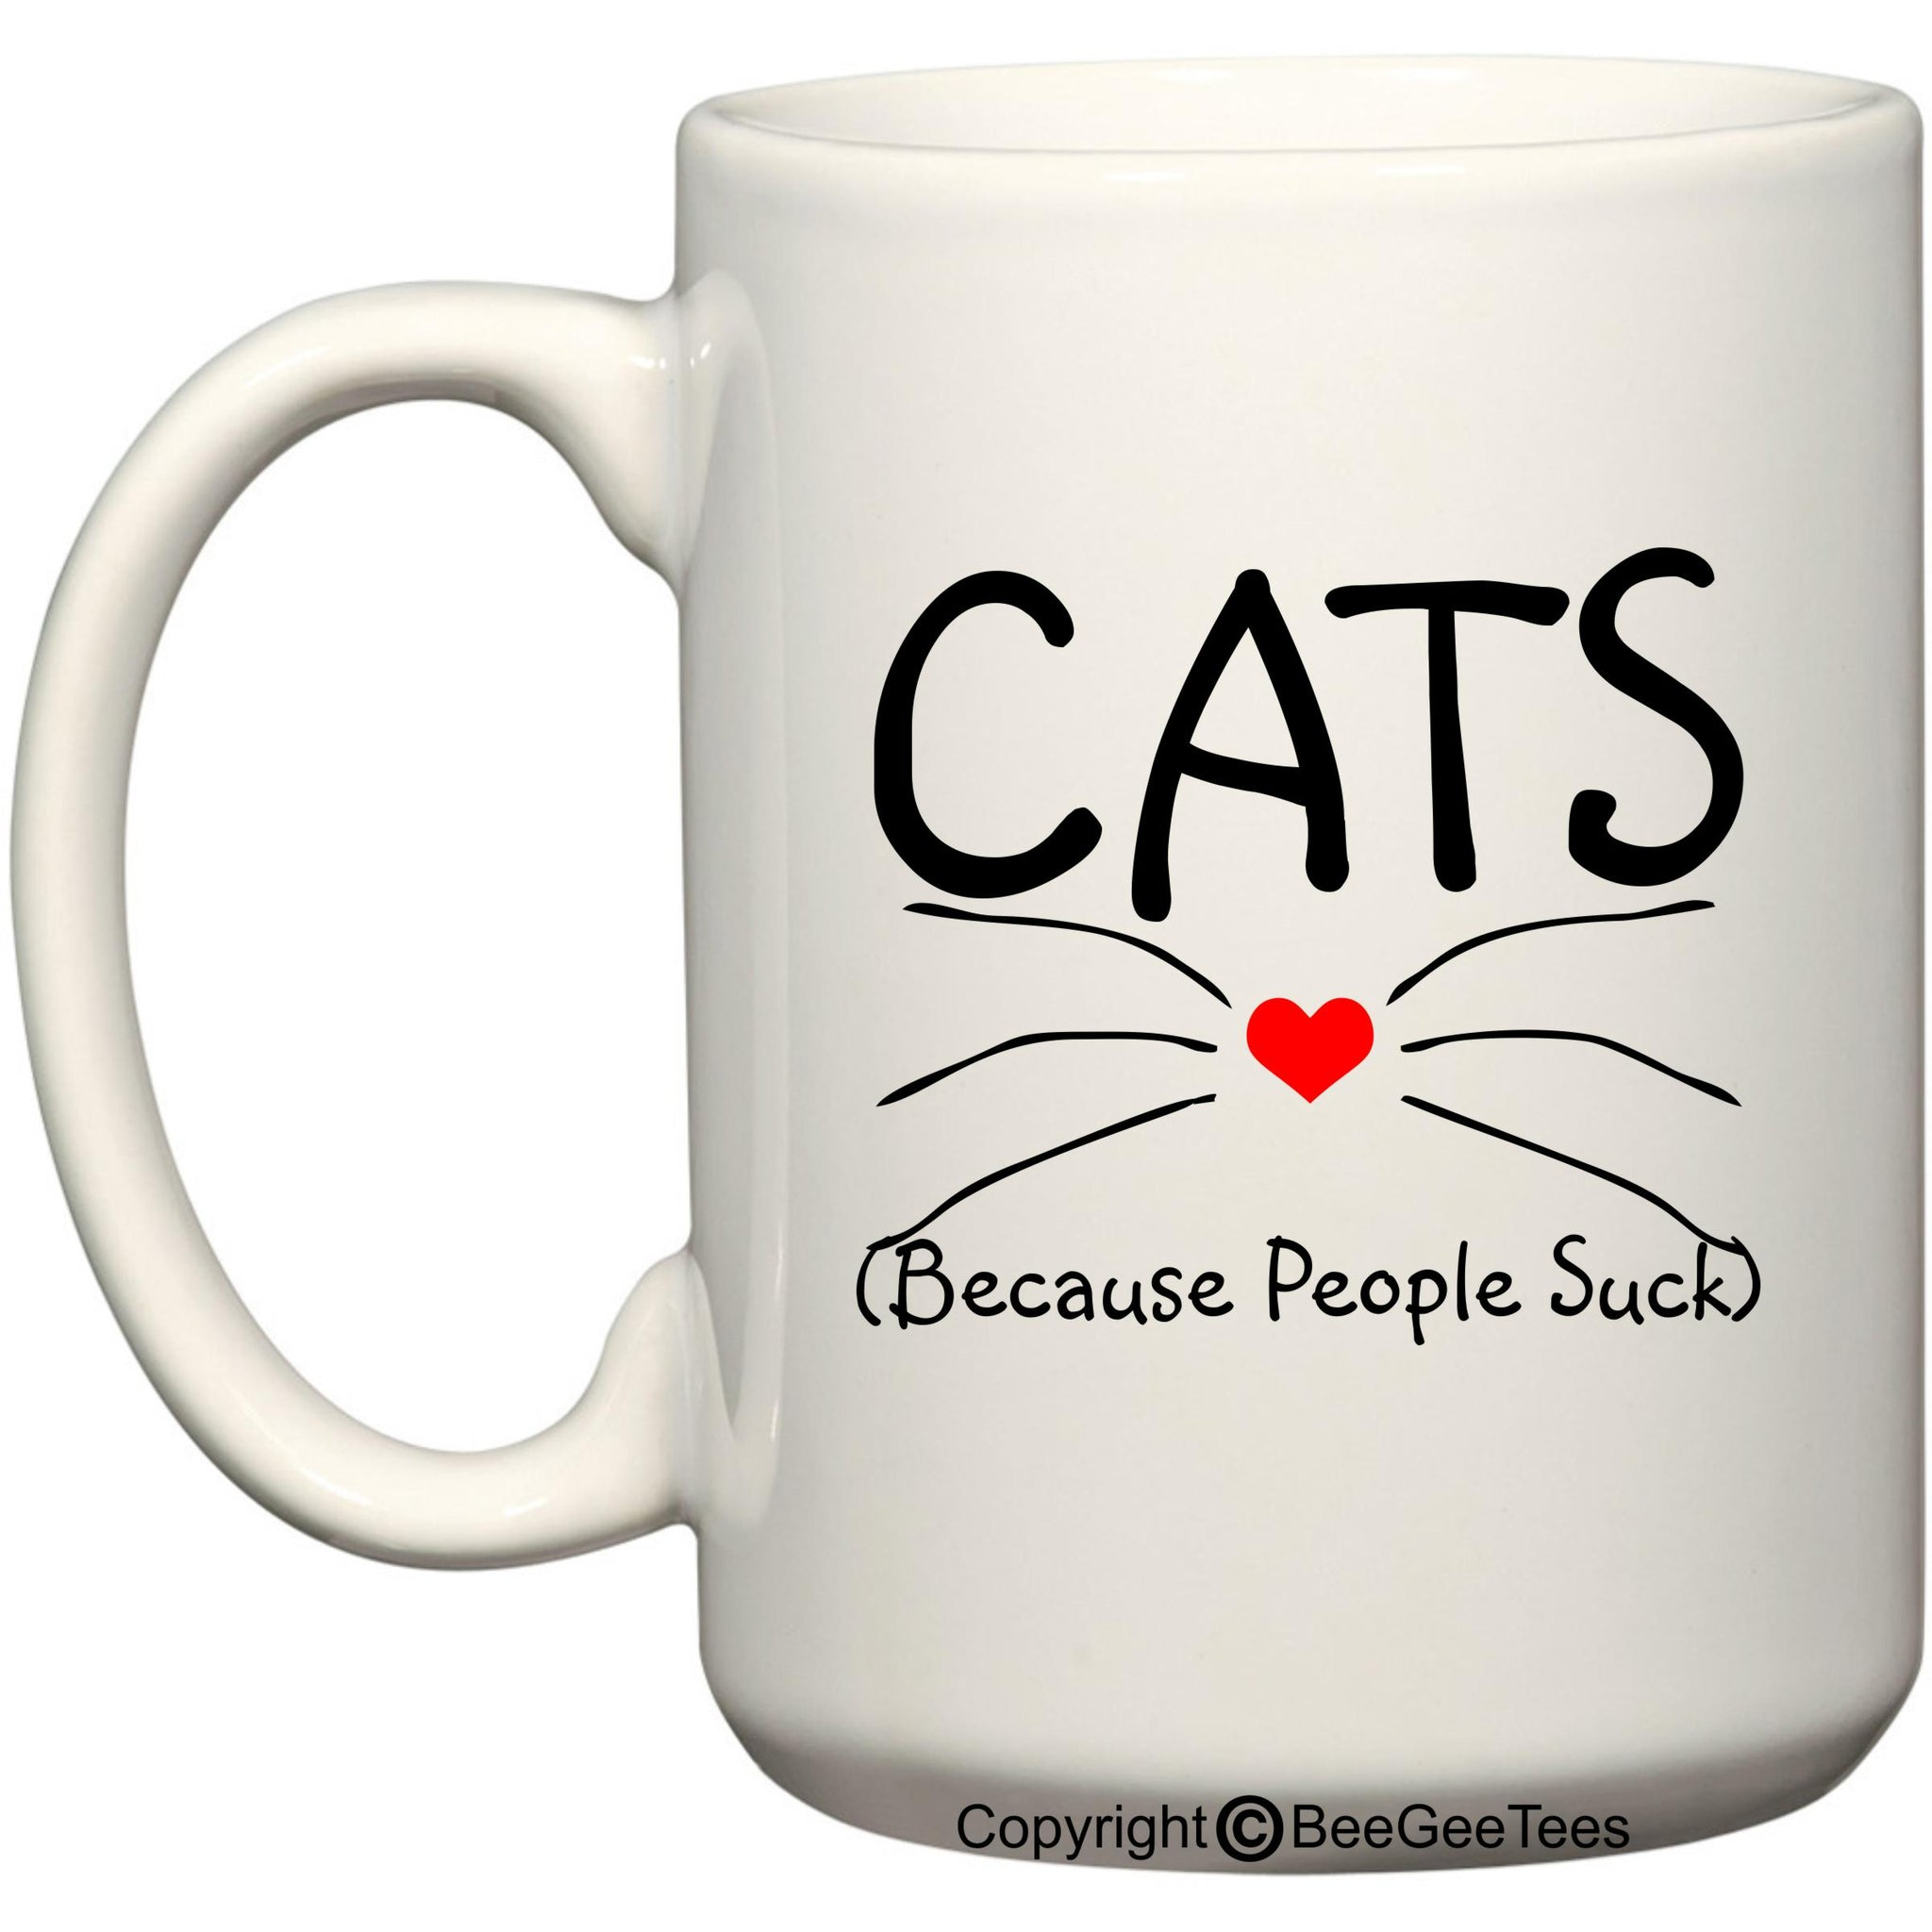 CATS Because People Suck Coffee Cup Cat Rescue Cat Lover Gift Mug by BeeGeeTees®